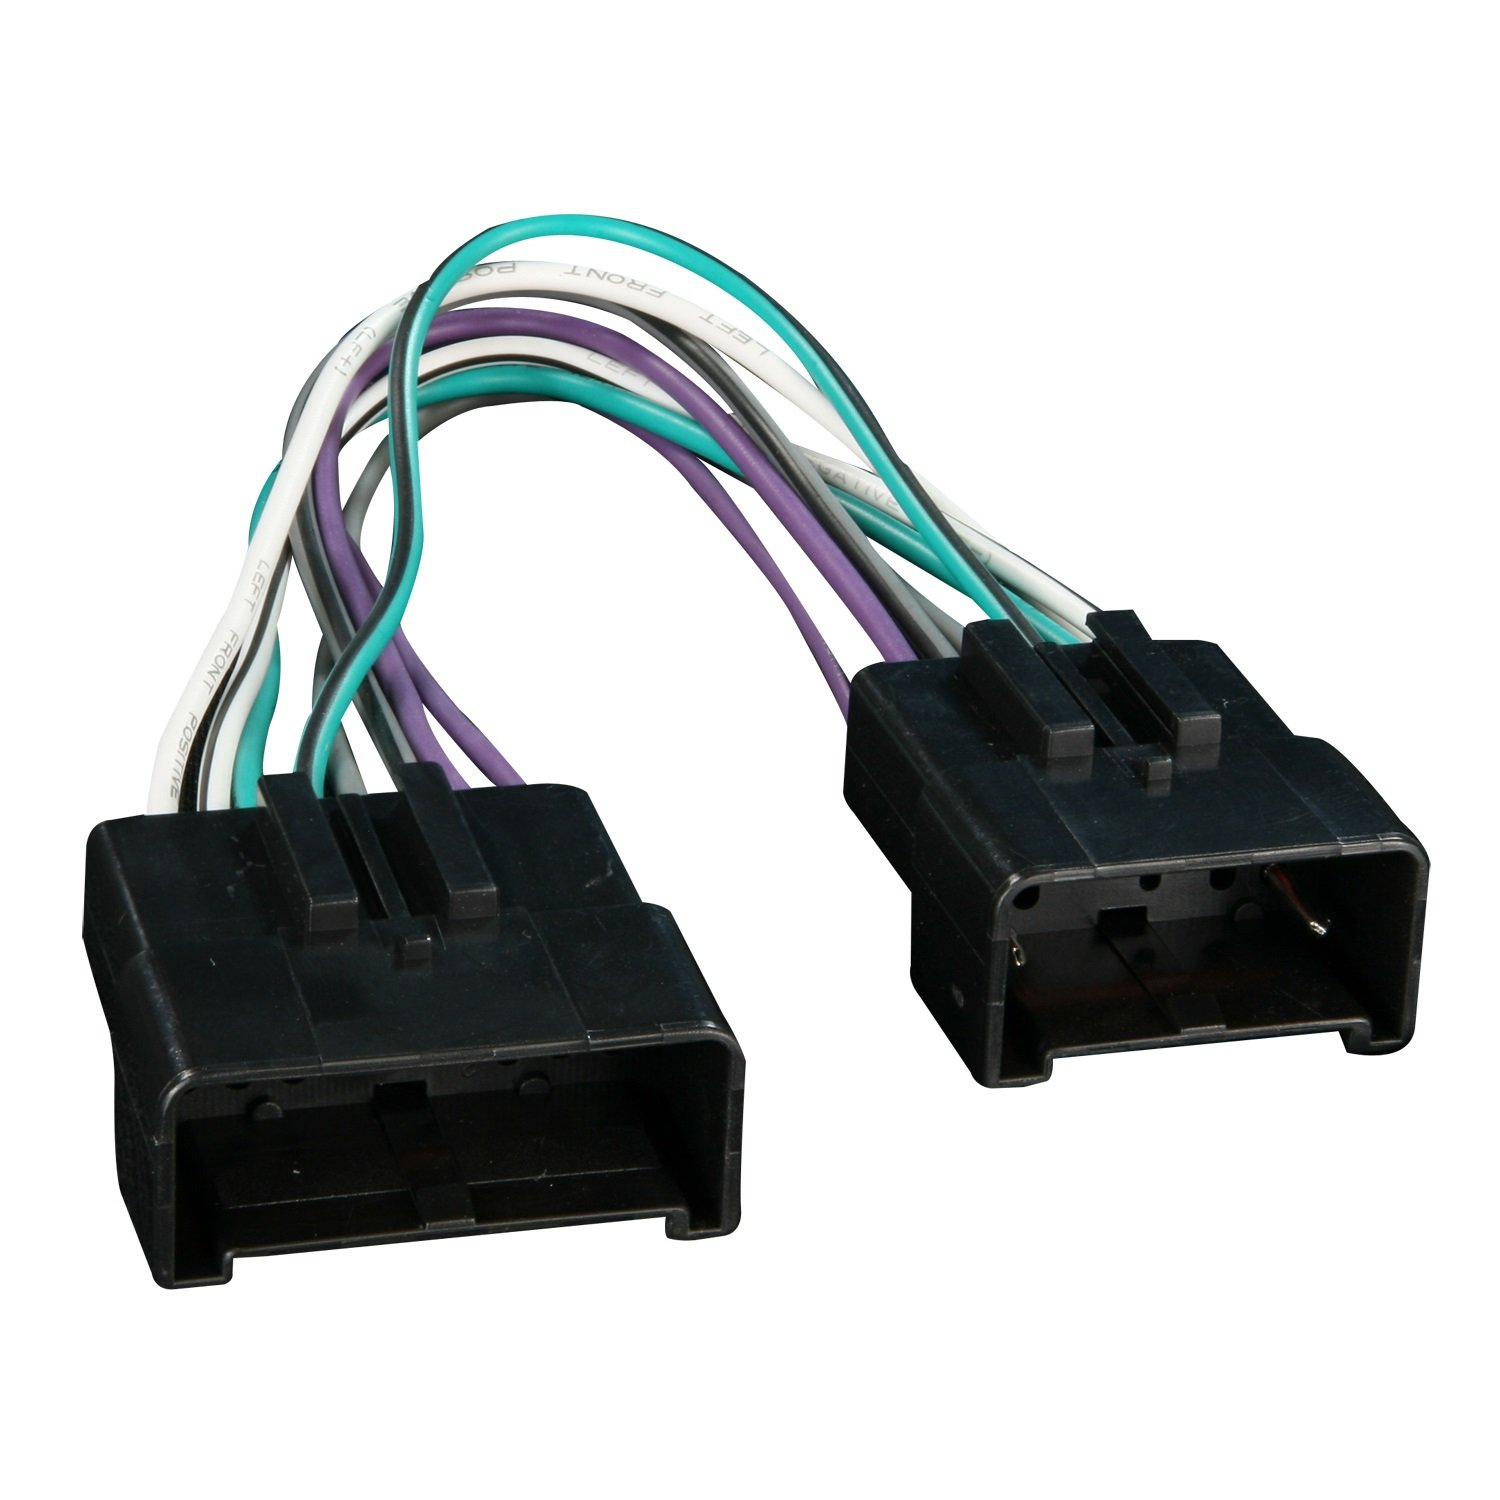 71pSHbvTl0L._SL1500_ amazon com metra 70 5513 radio wiring harness for ford amplifier  at bakdesigns.co